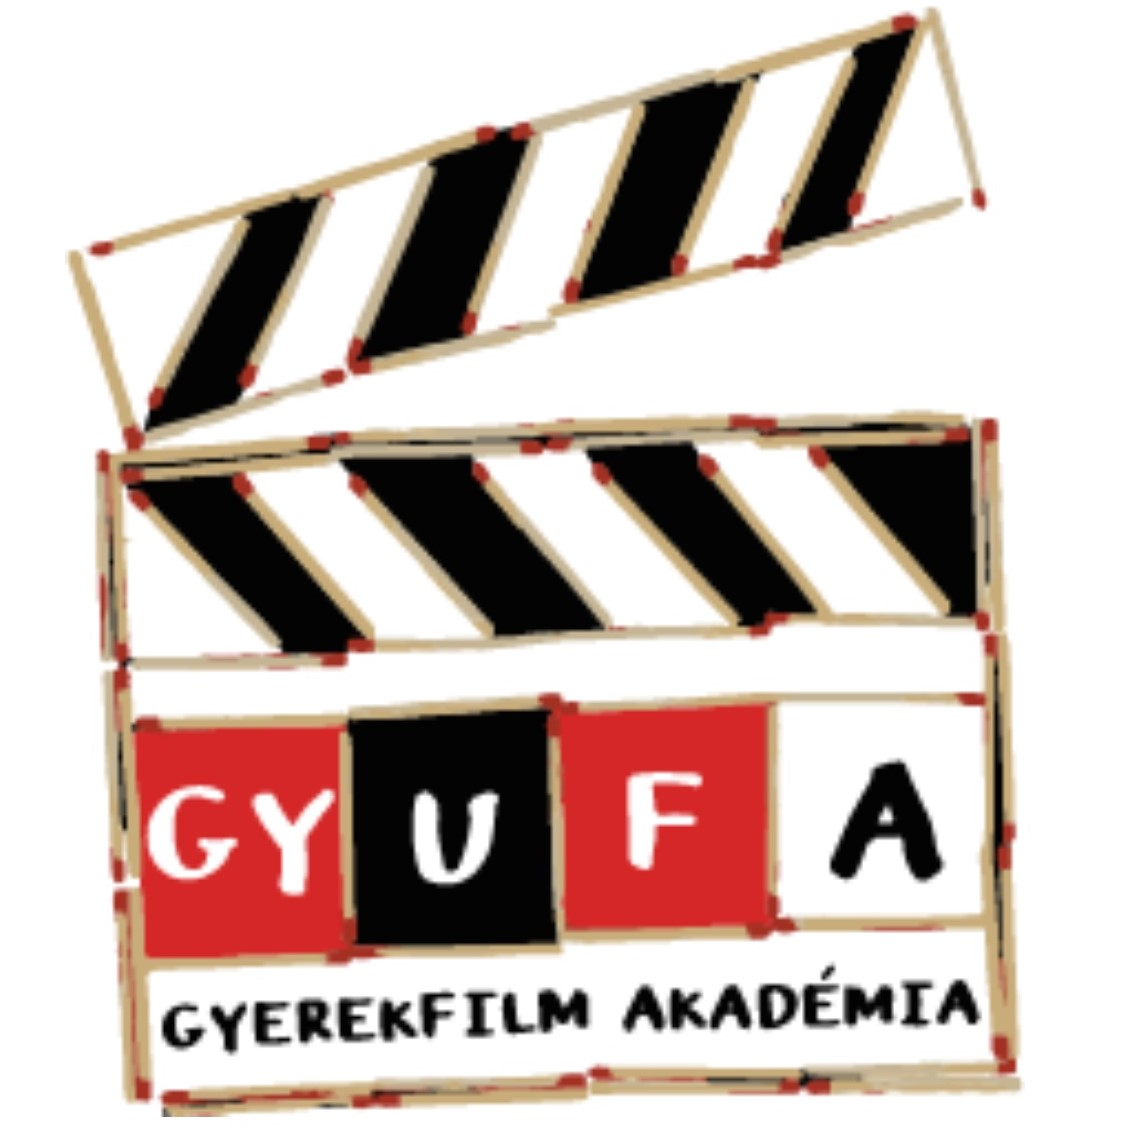 Children's Film Academy